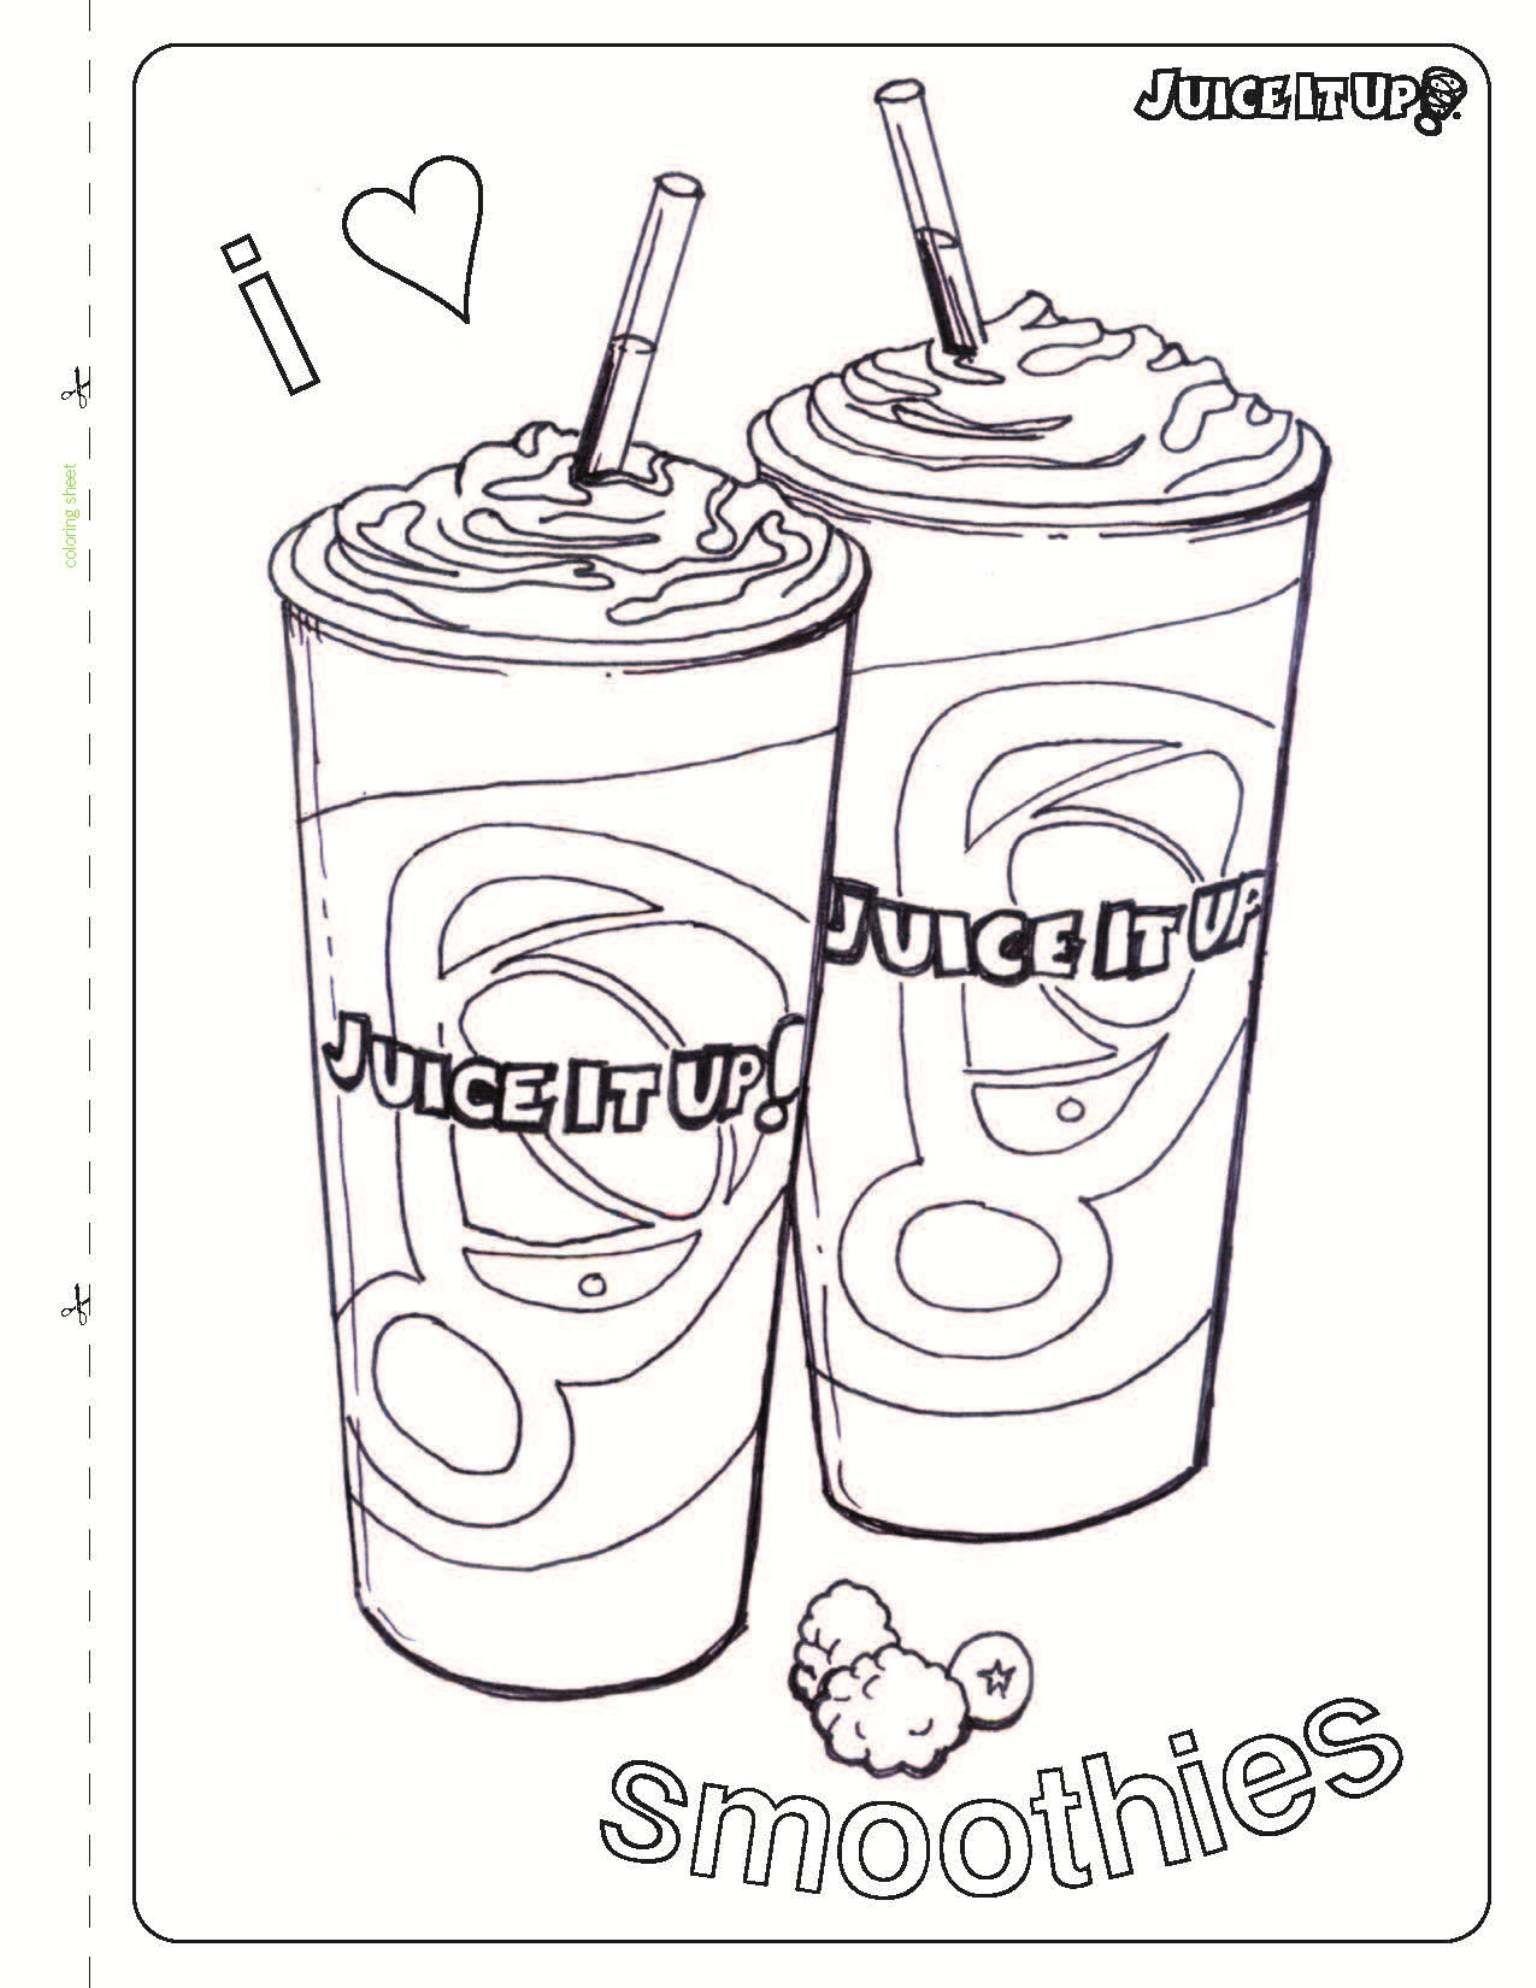 Juice It Up Kids Coloring Sheets Print Out Color Fun